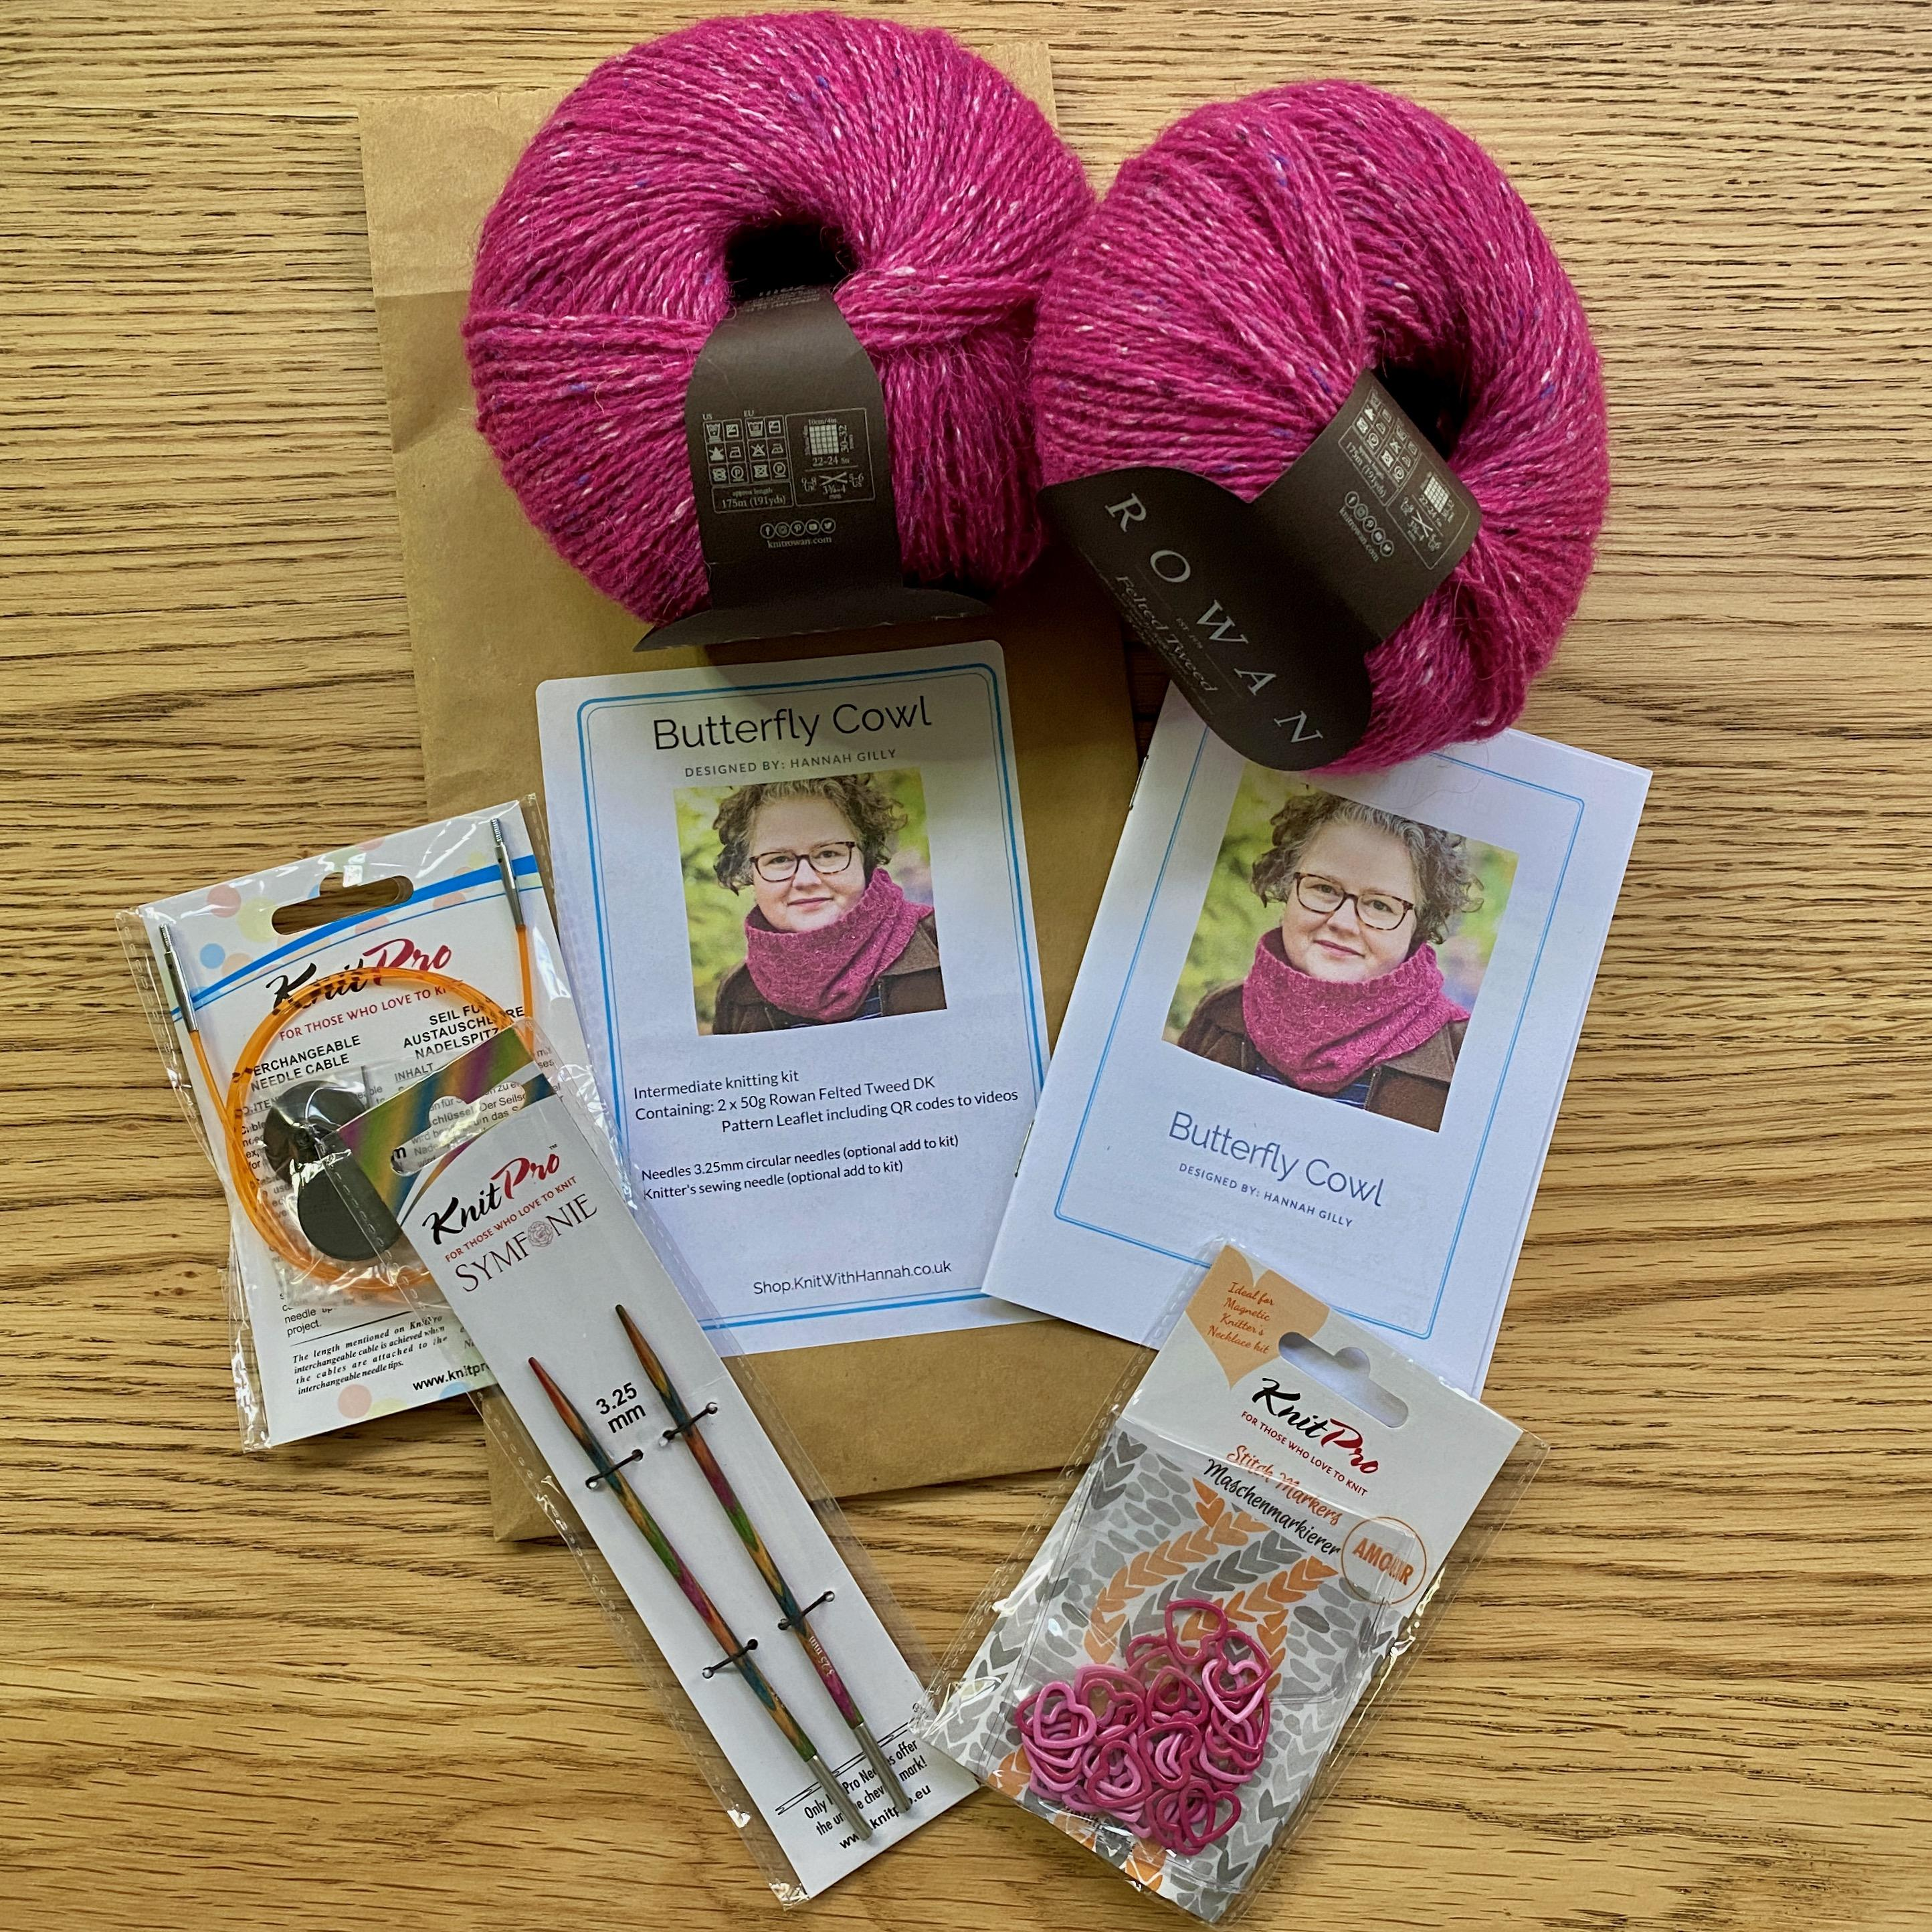 Open butterfly knitting kit on wooden table, pattern, pink yarn, knitting needles and stitch markers